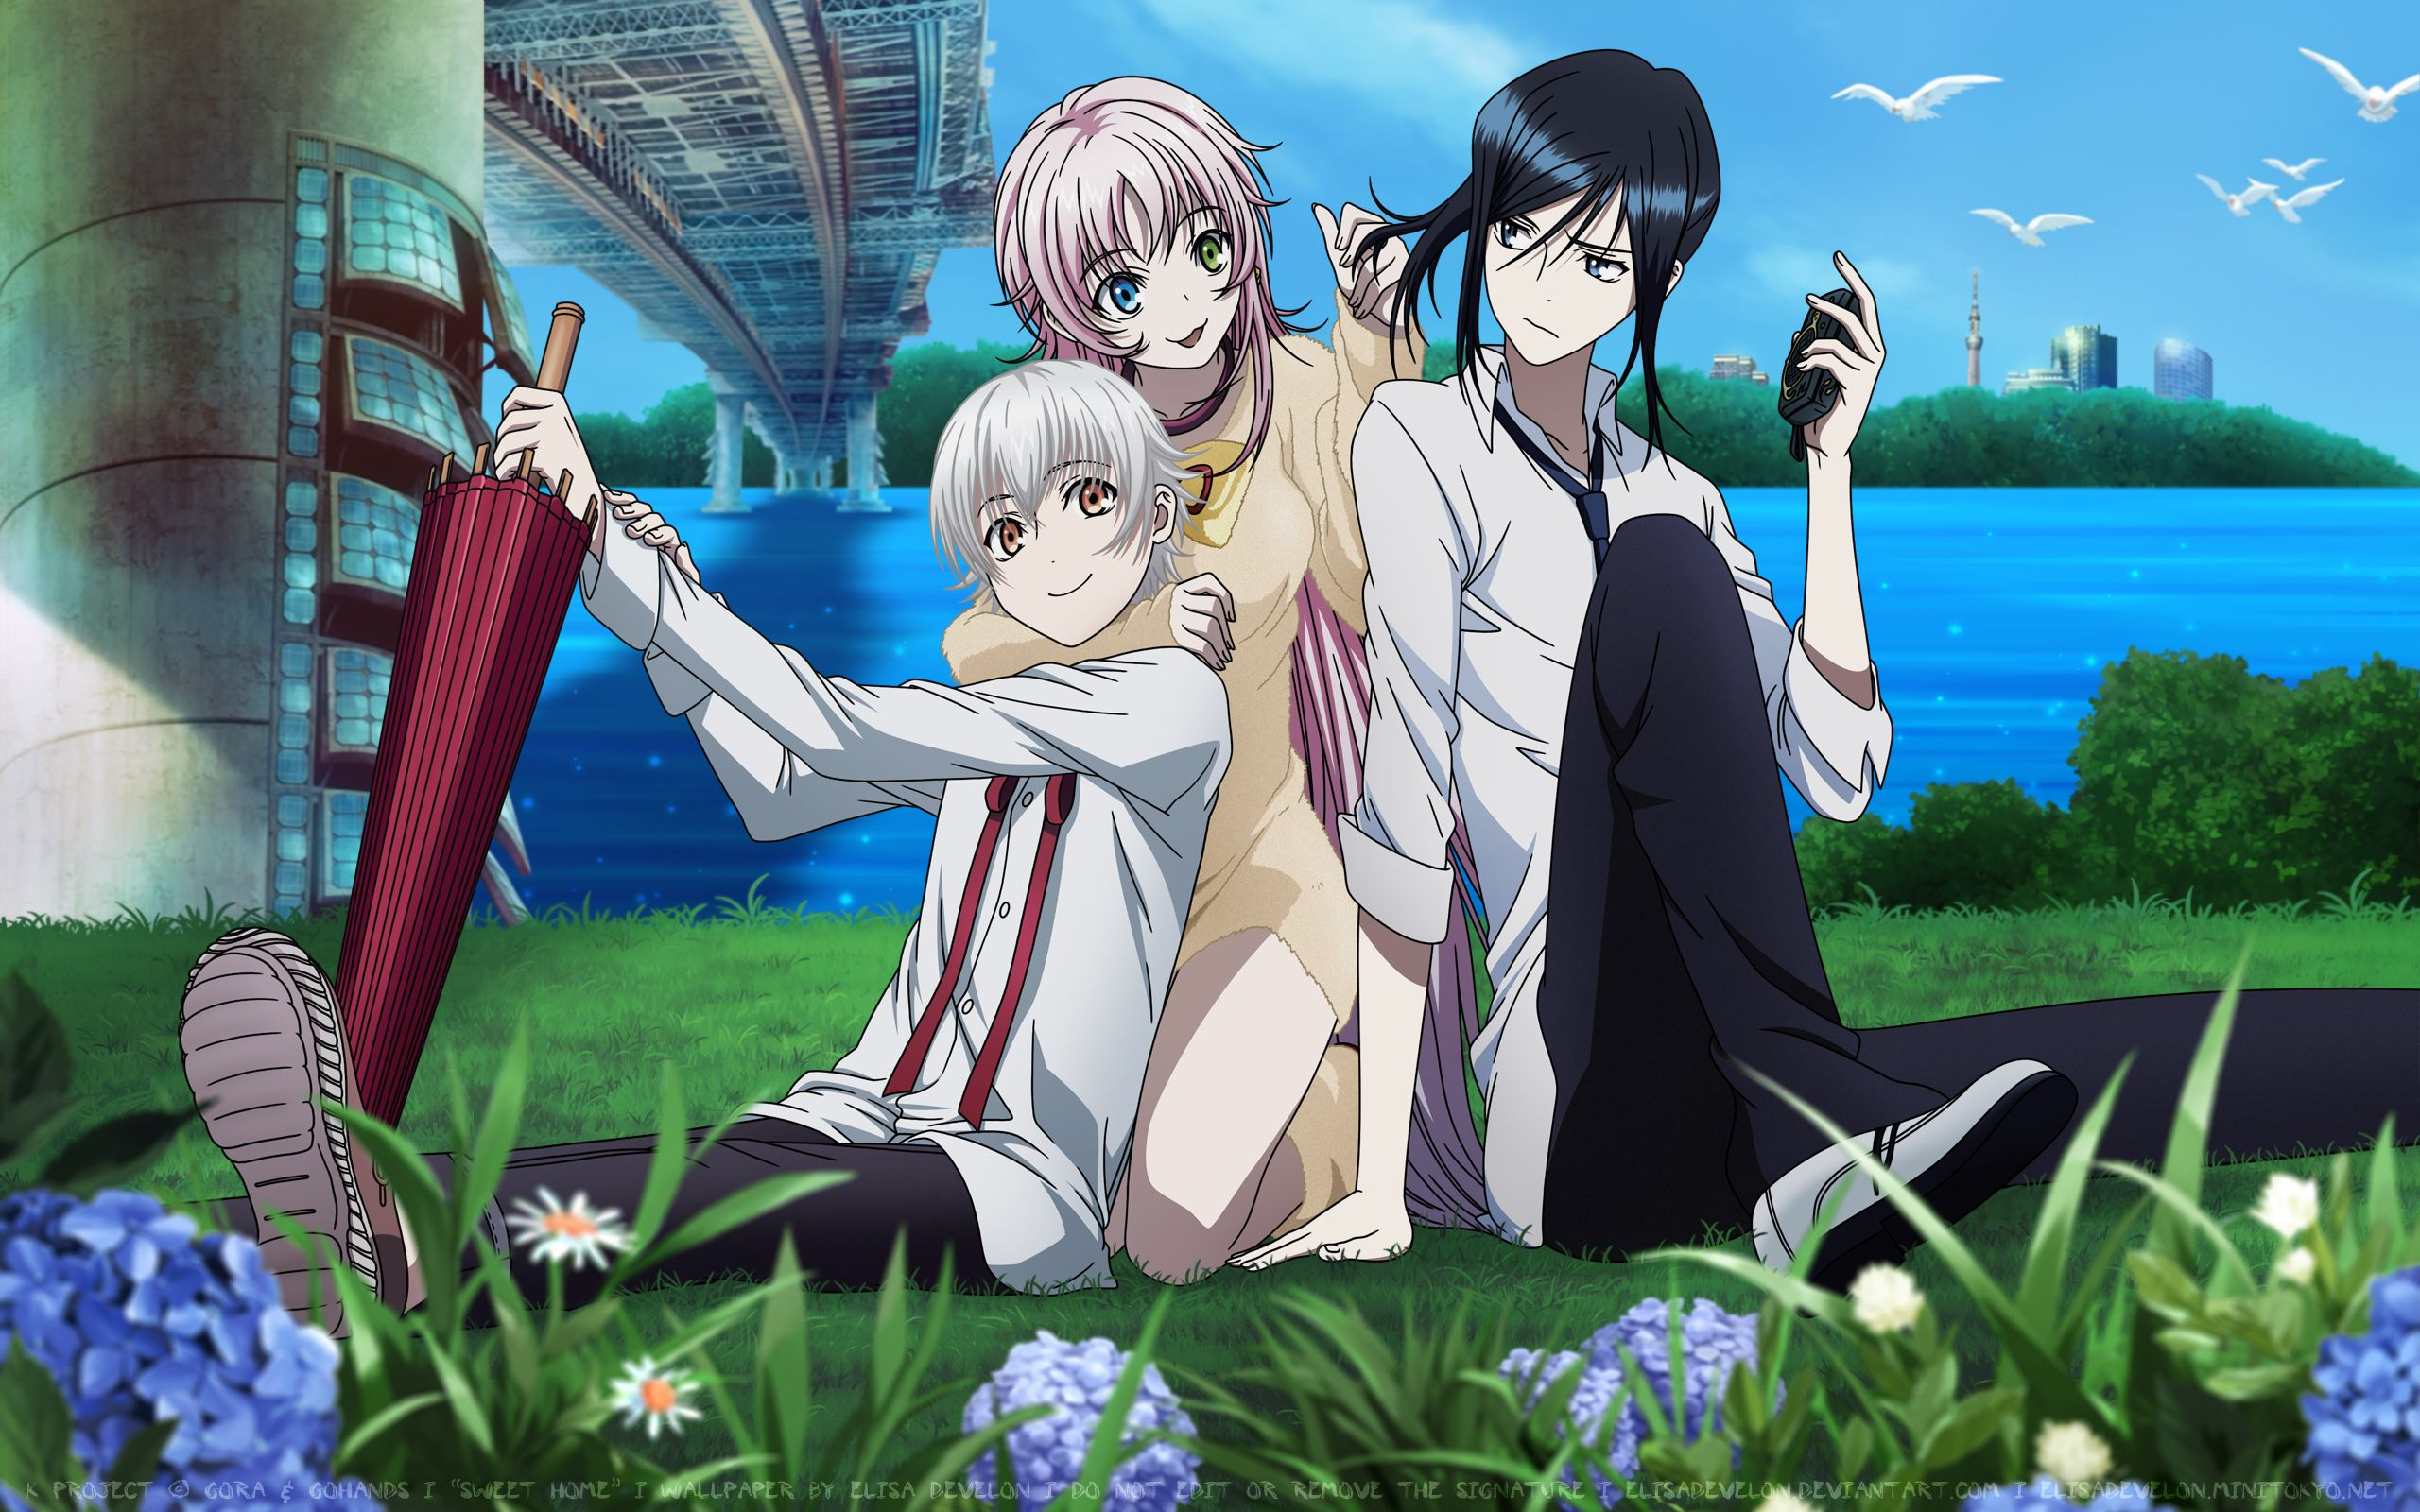 K Anime Wallpaper Of Neko Kuroh And Yashiro K Project Anime K